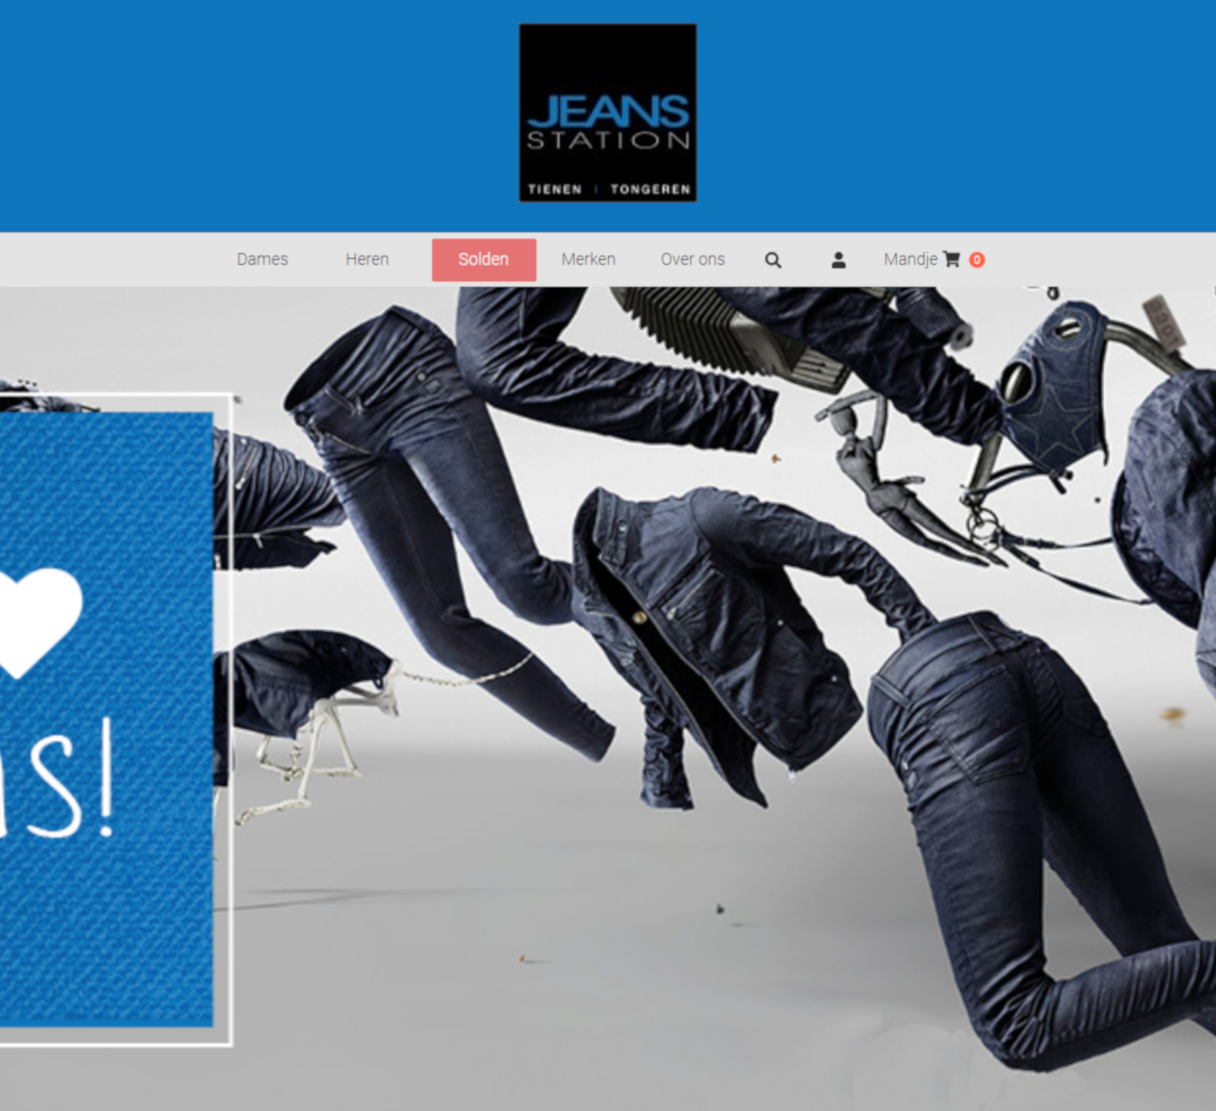 FashionManager Web - Jeans Station